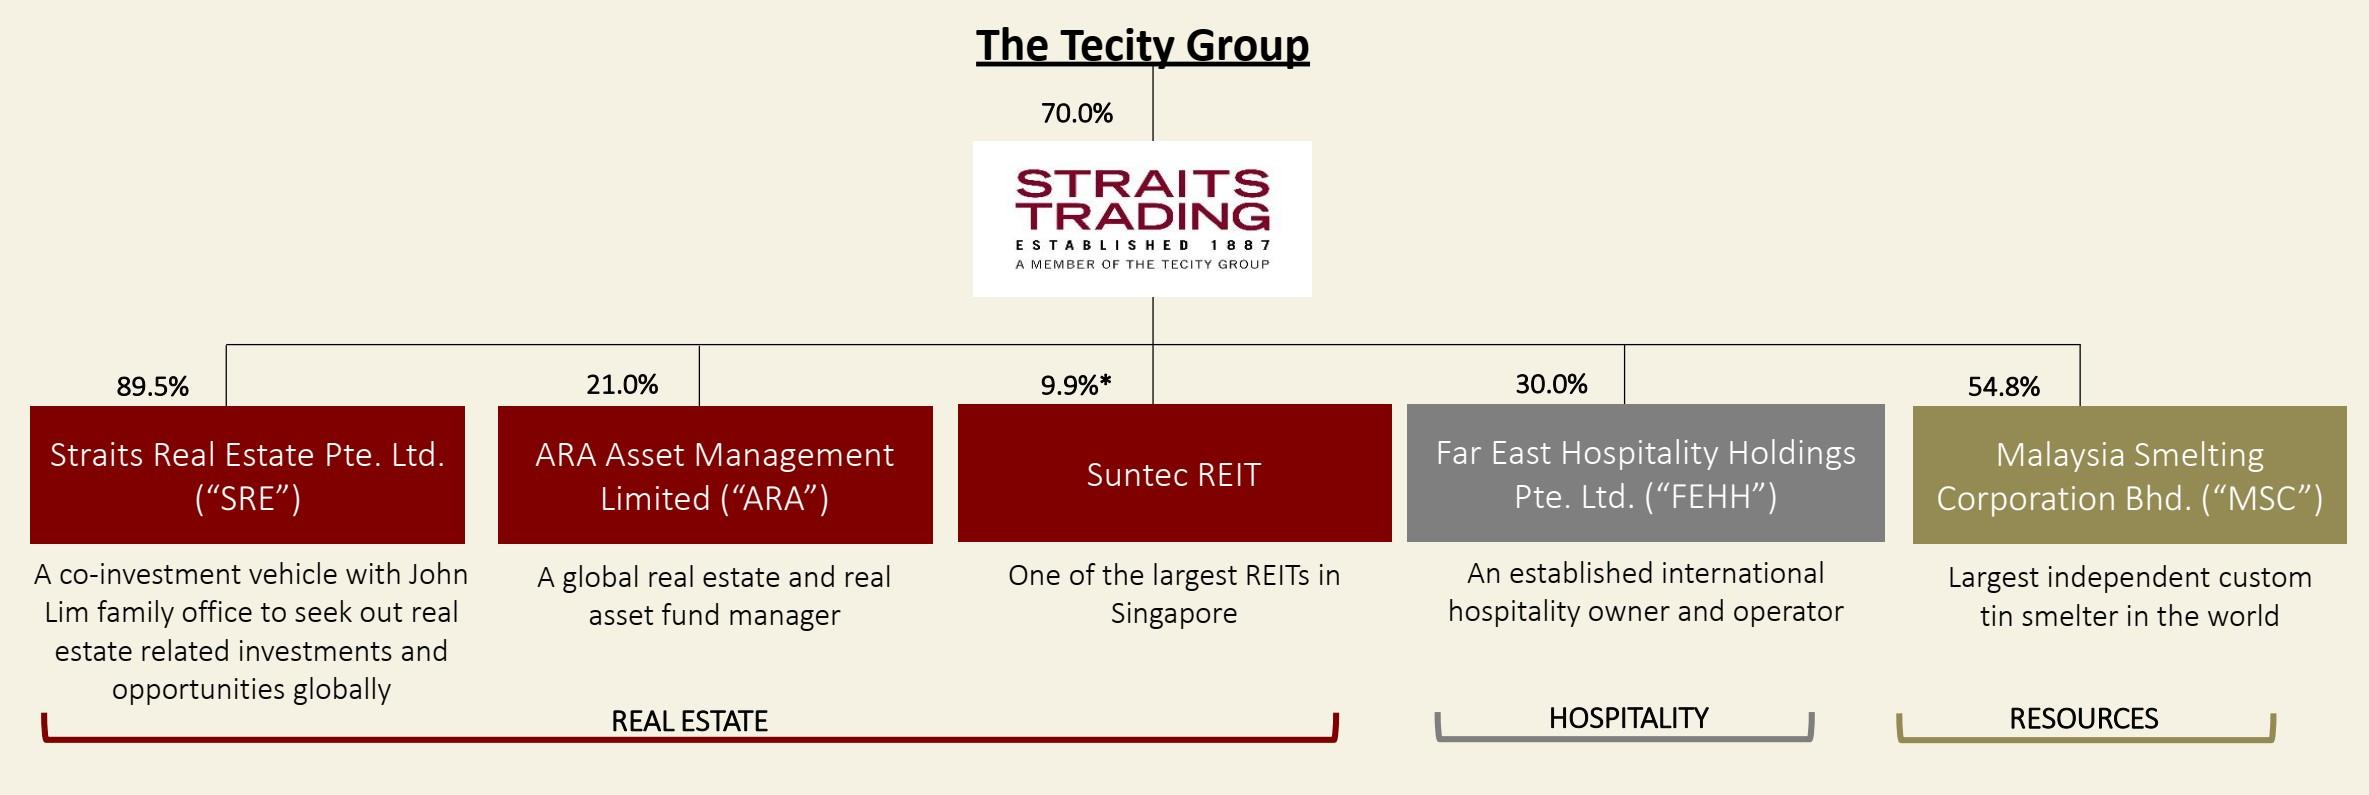 Straits Trading: Conglomerate Discount Could Persist For Longer Than Expected